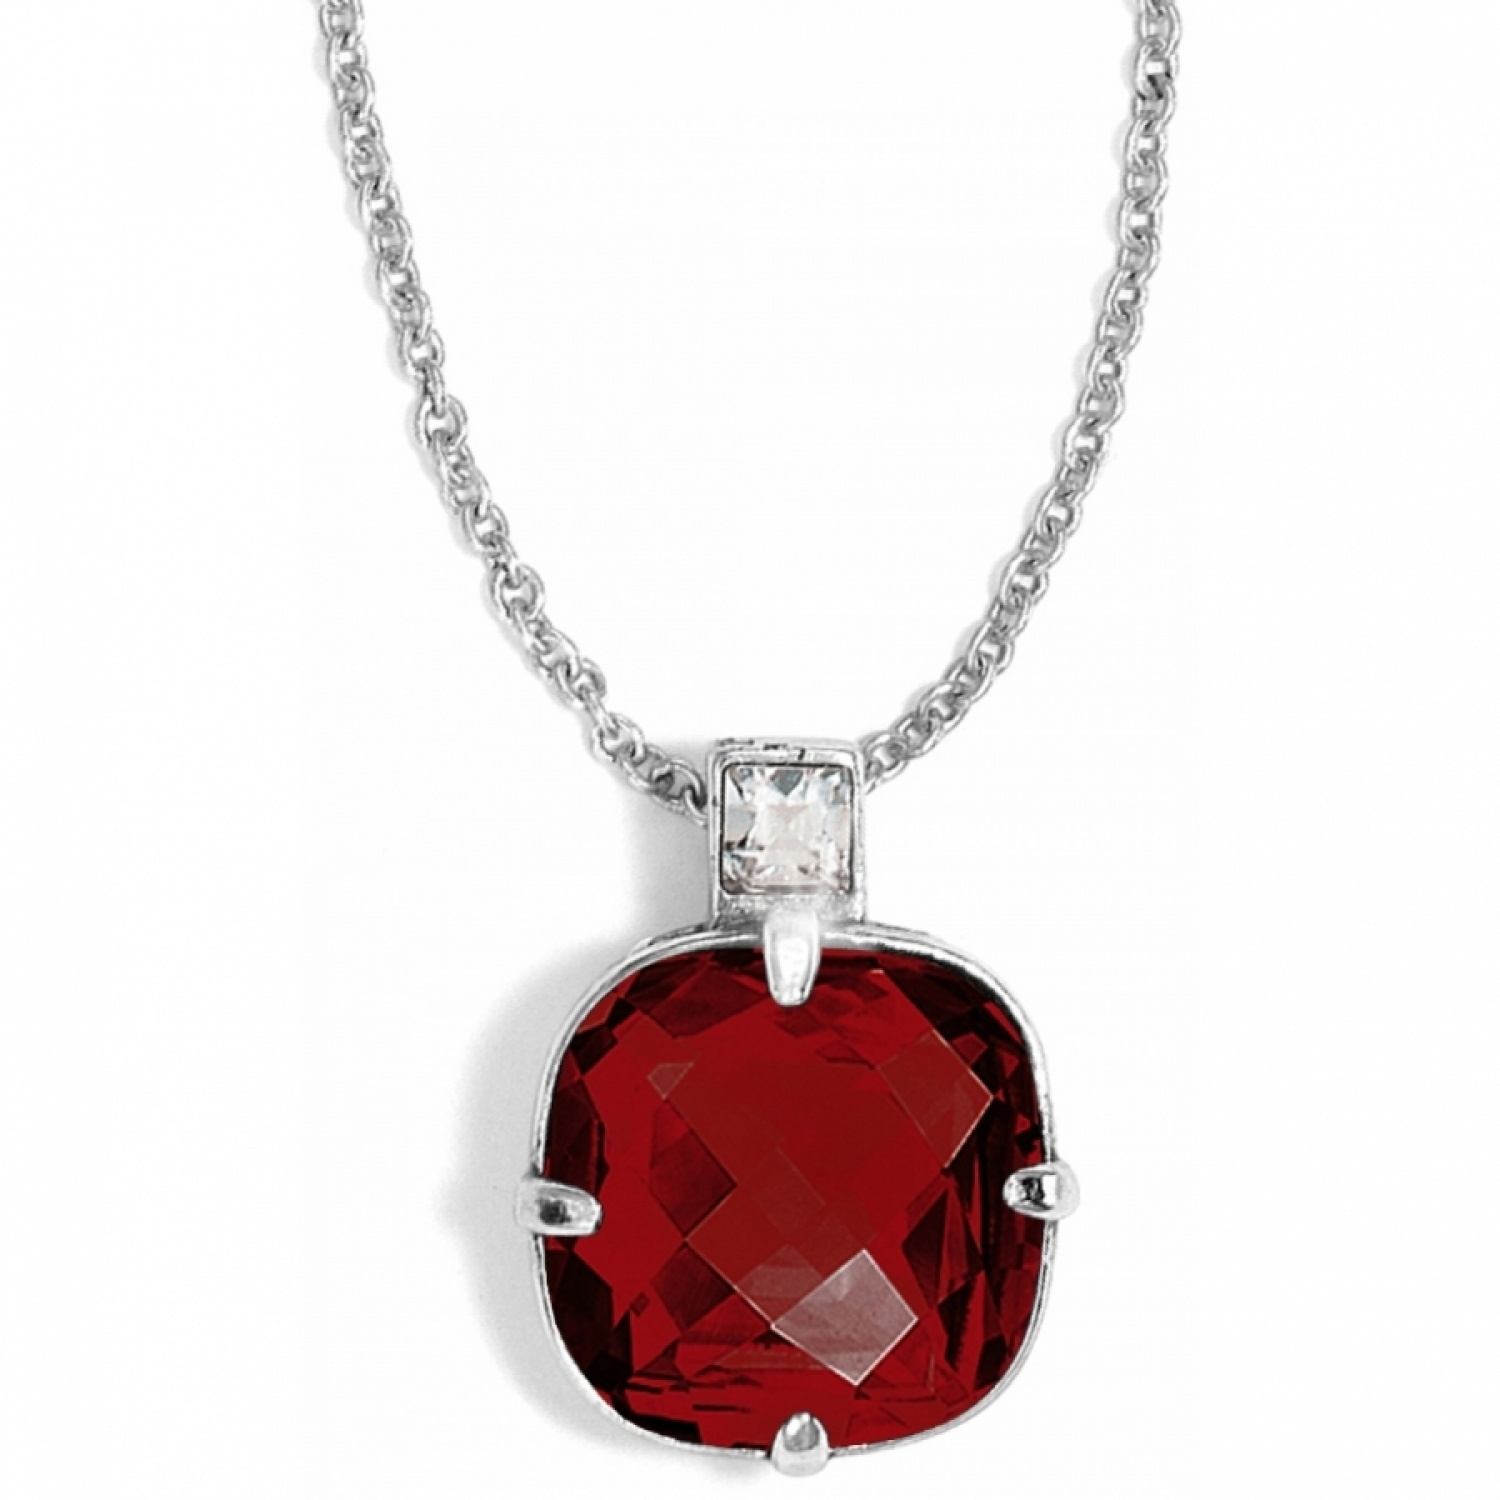 company heyman category mandarin courtney erica garnet mccaskill aphrodite blog red by oscar necklace